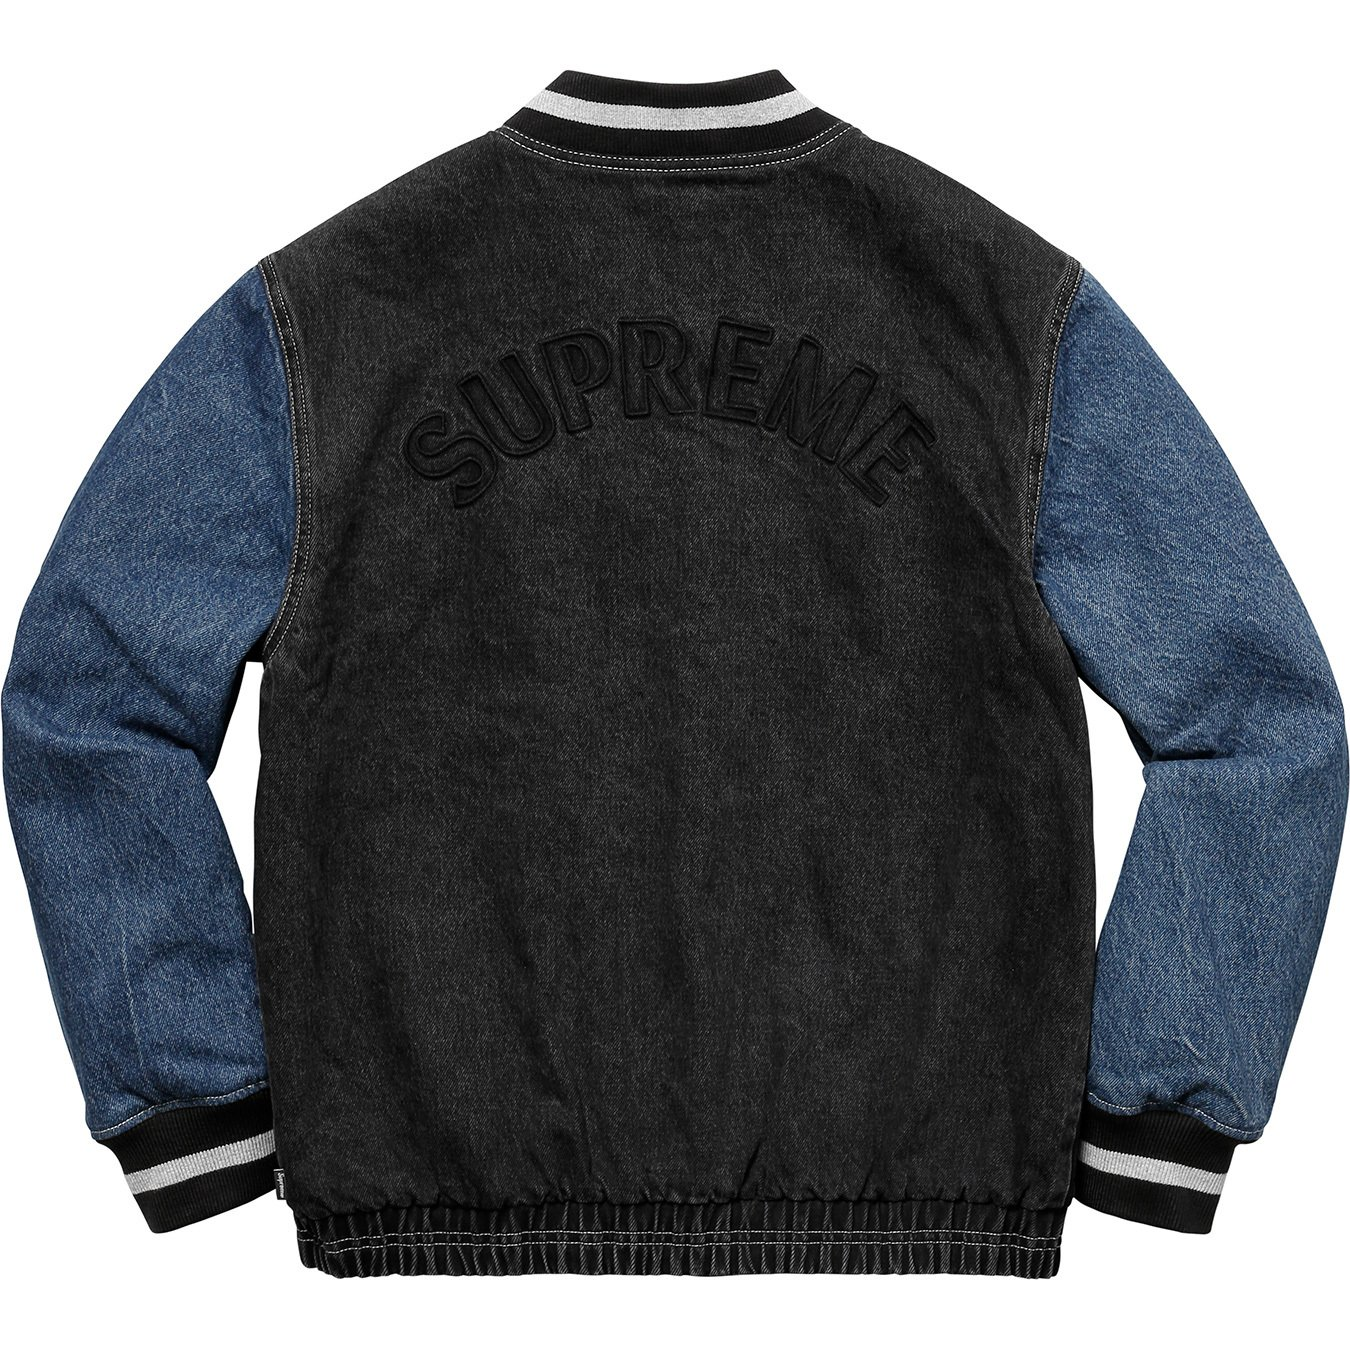 supreme-18ss-spring-summer-denim-varsity-jacket